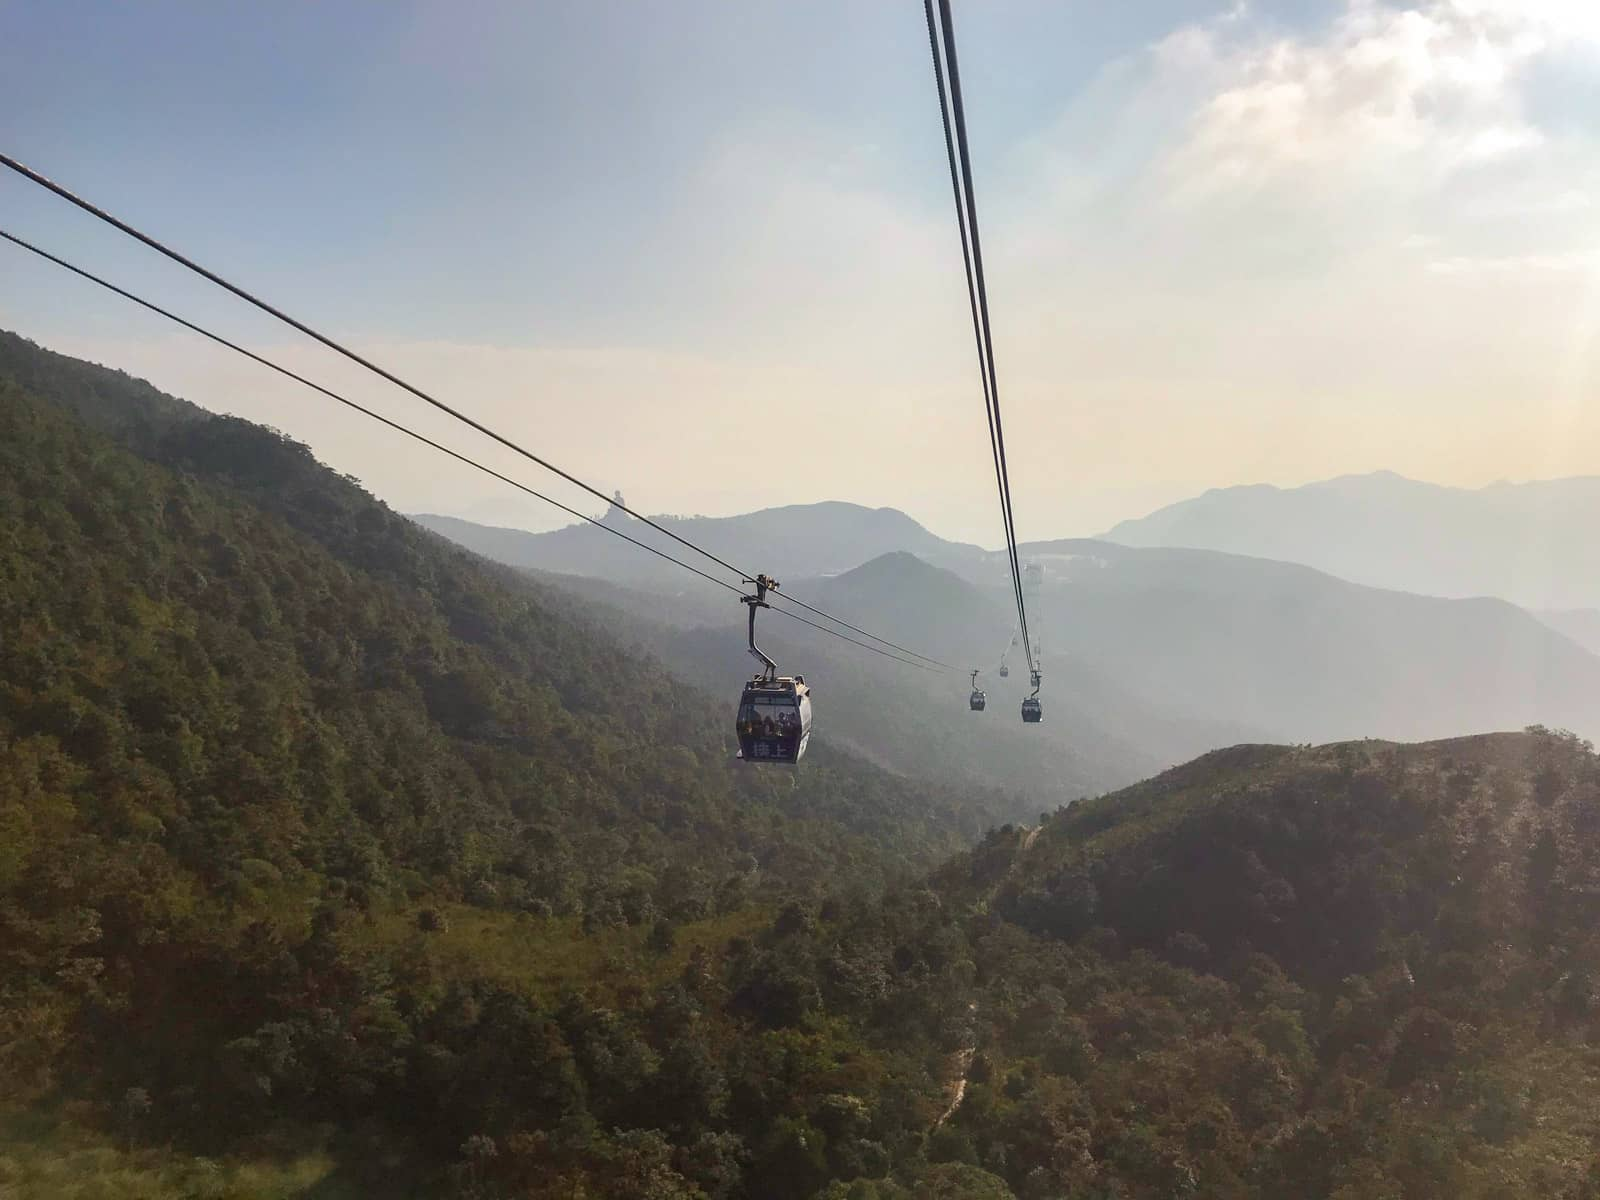 A view of two lines of cable cars going in opposite directions as seen from another cable car on the route